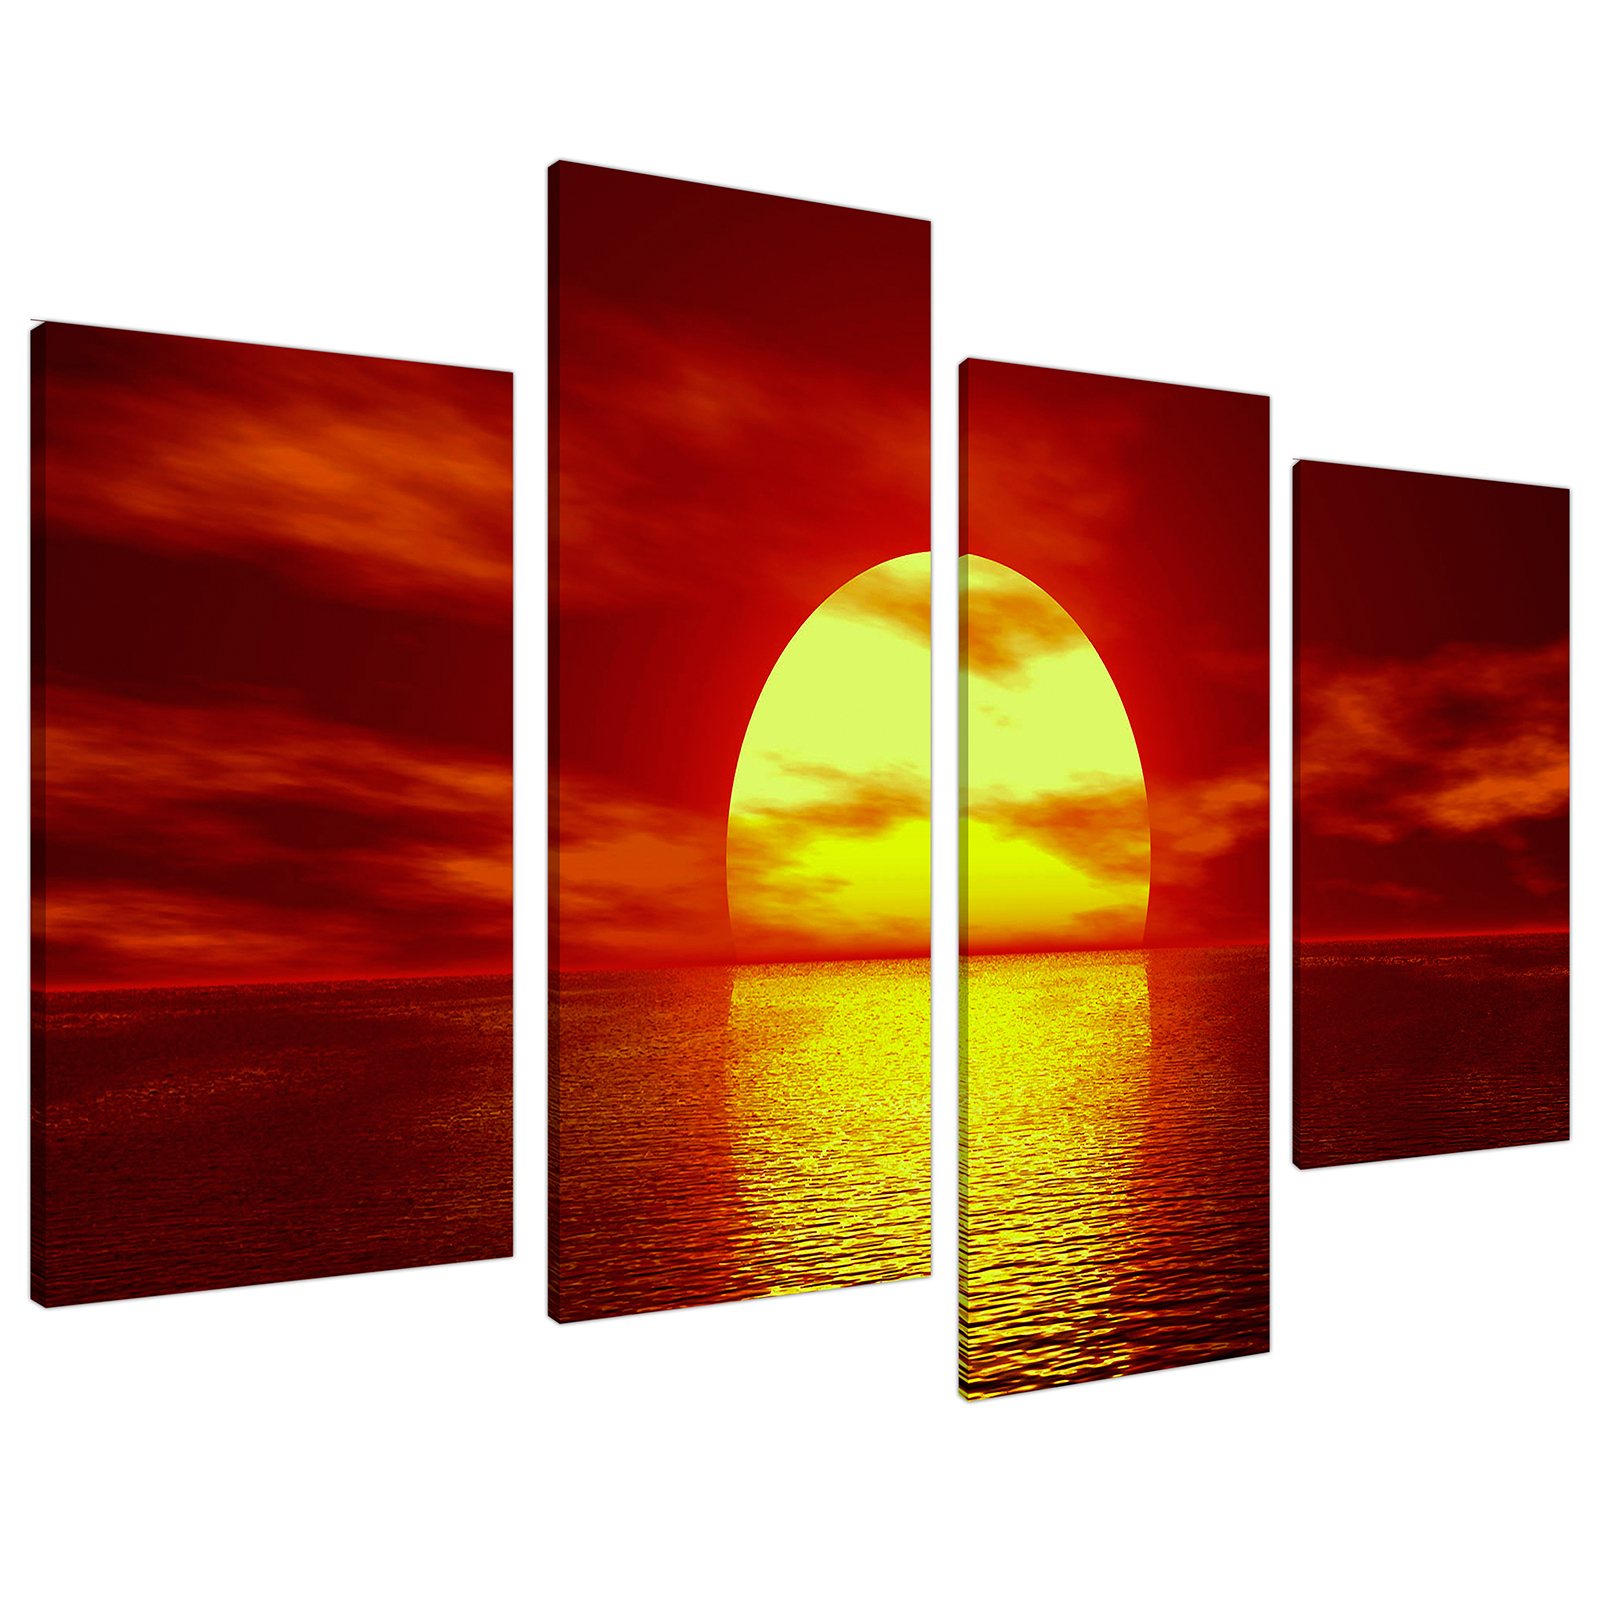 An image of Red Yellow Sunset Ocean Sky Landscape Canvas - Multi 4 Part - 130cm - 4001